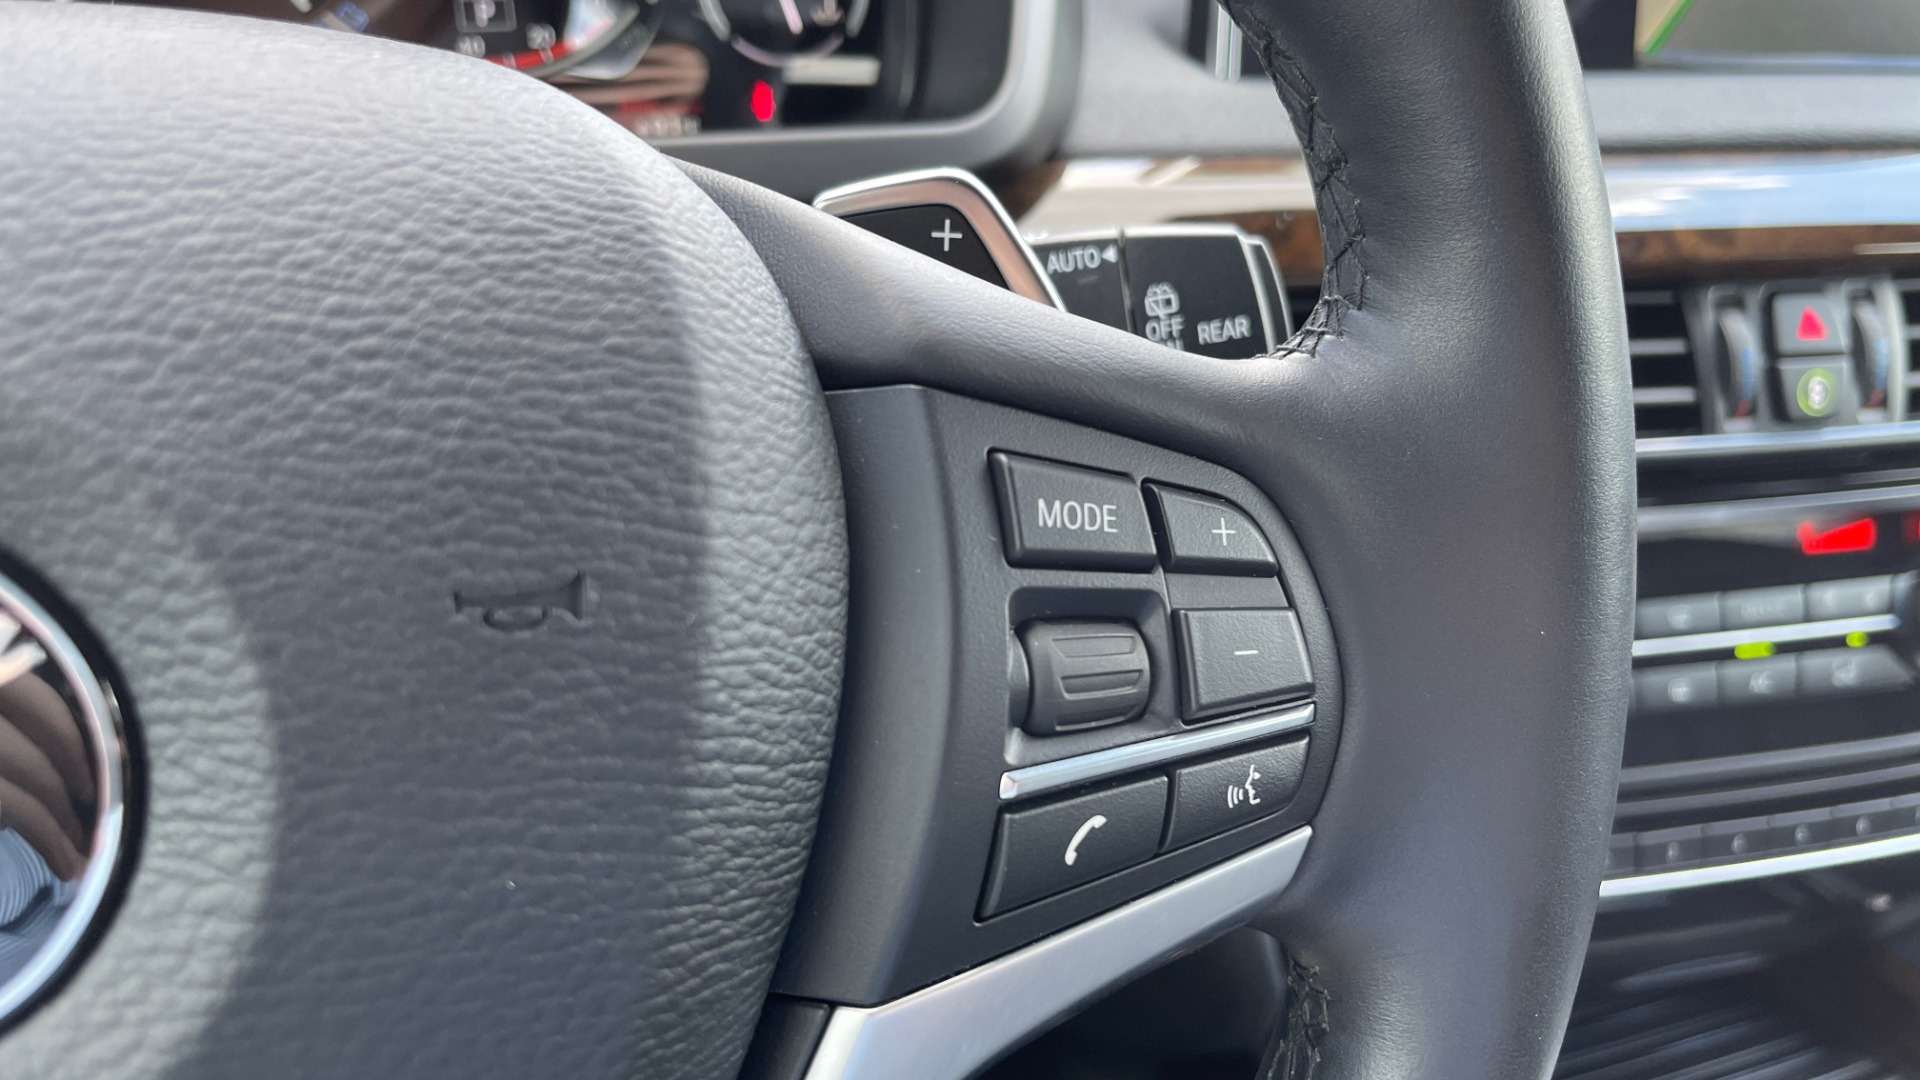 Used 2018 BMW X5 XDRIVE35I PREMIUM / DRVR ASST / WIRELESS CHARGING / CAMERAS for sale $46,995 at Formula Imports in Charlotte NC 28227 44